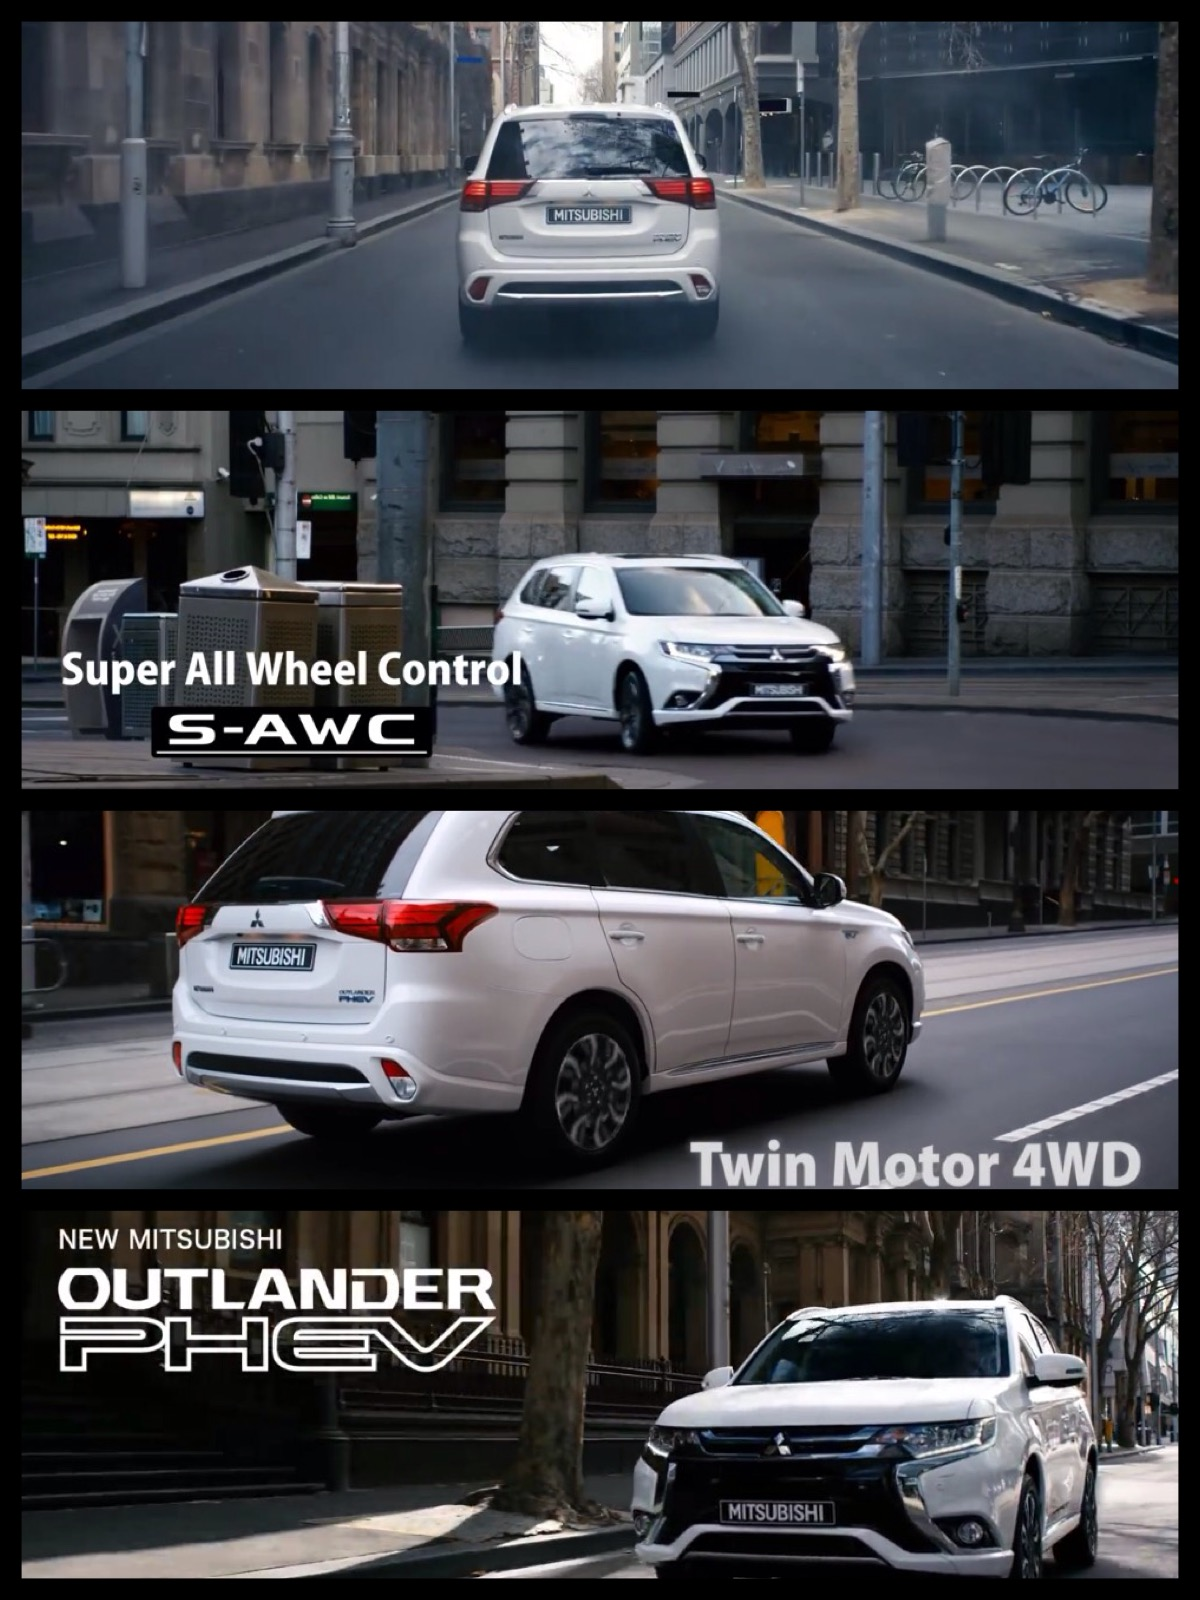 2016 OUTLANDER PHEV Promotional Video